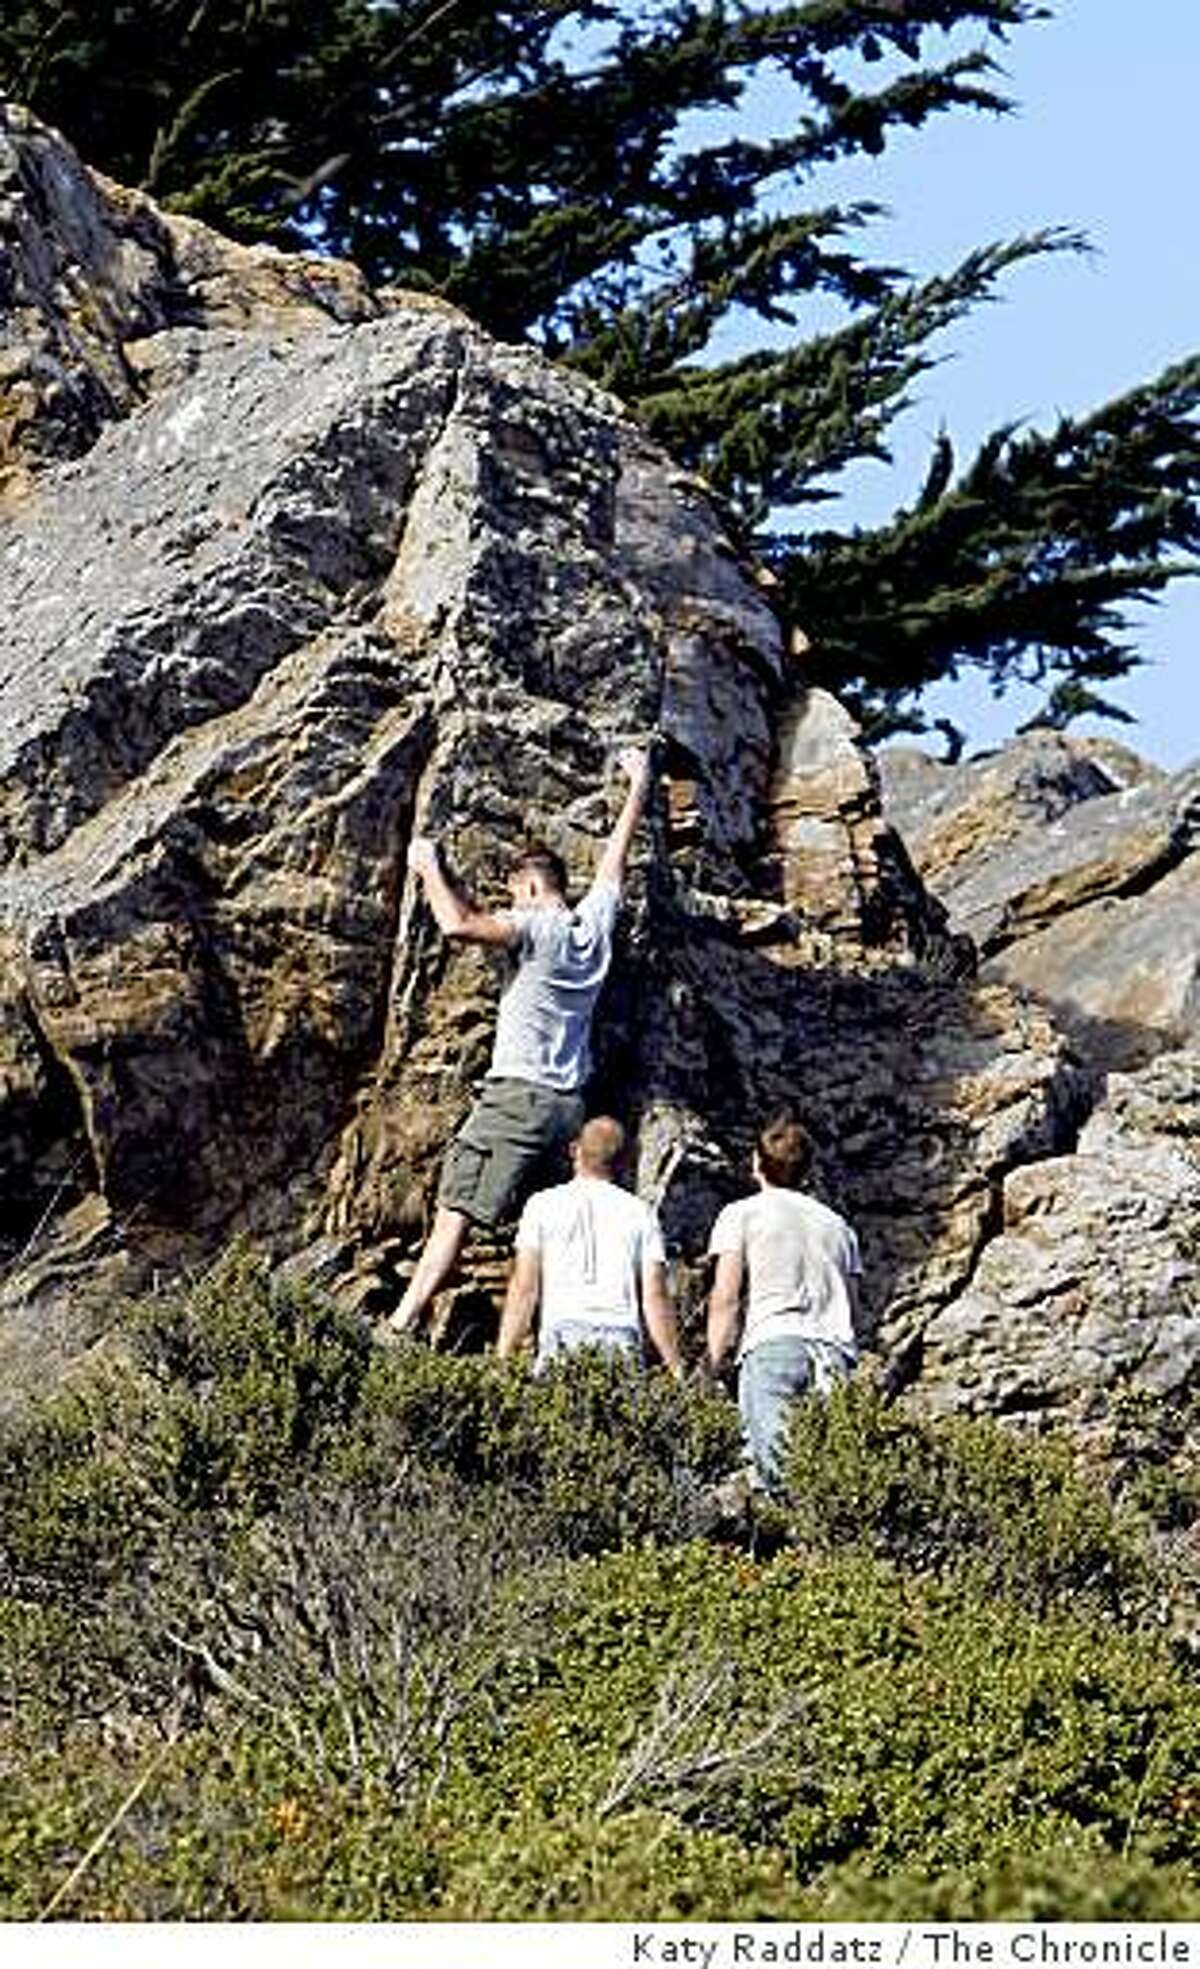 Rock climbers practice bouldering on one of the chert outcroppings in Glen Canyon, in San Francisco, Calif. Sunday, Aug. 3, 2008.